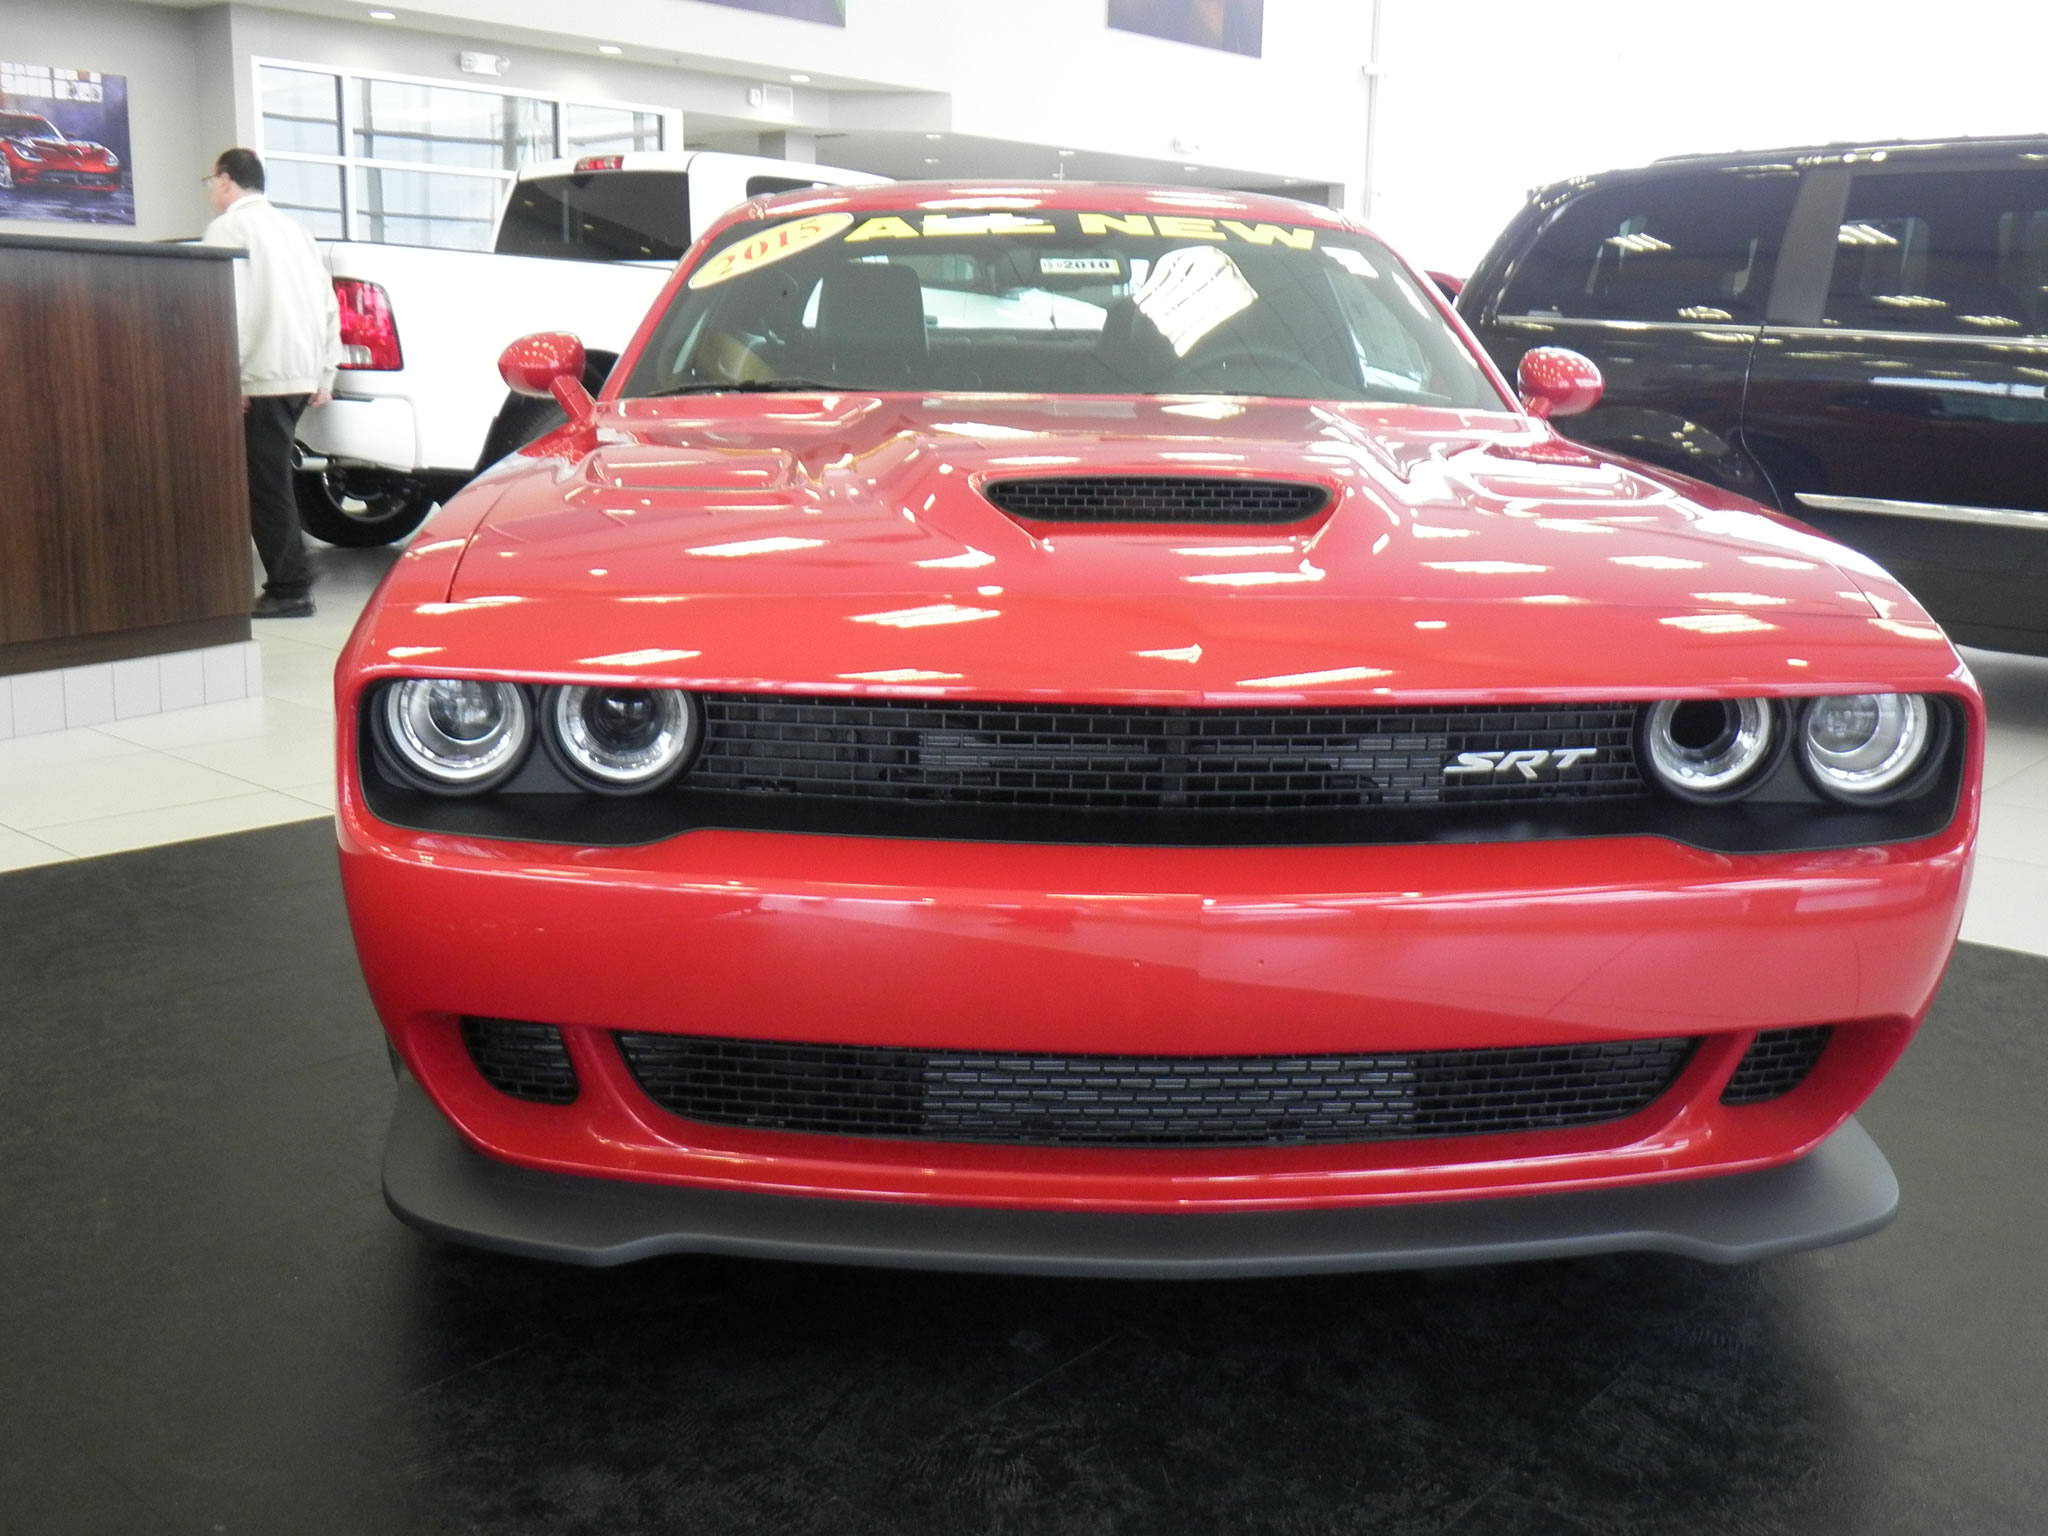 2015 Dodge Challenger Srt Hellcat At Naperville Dealer